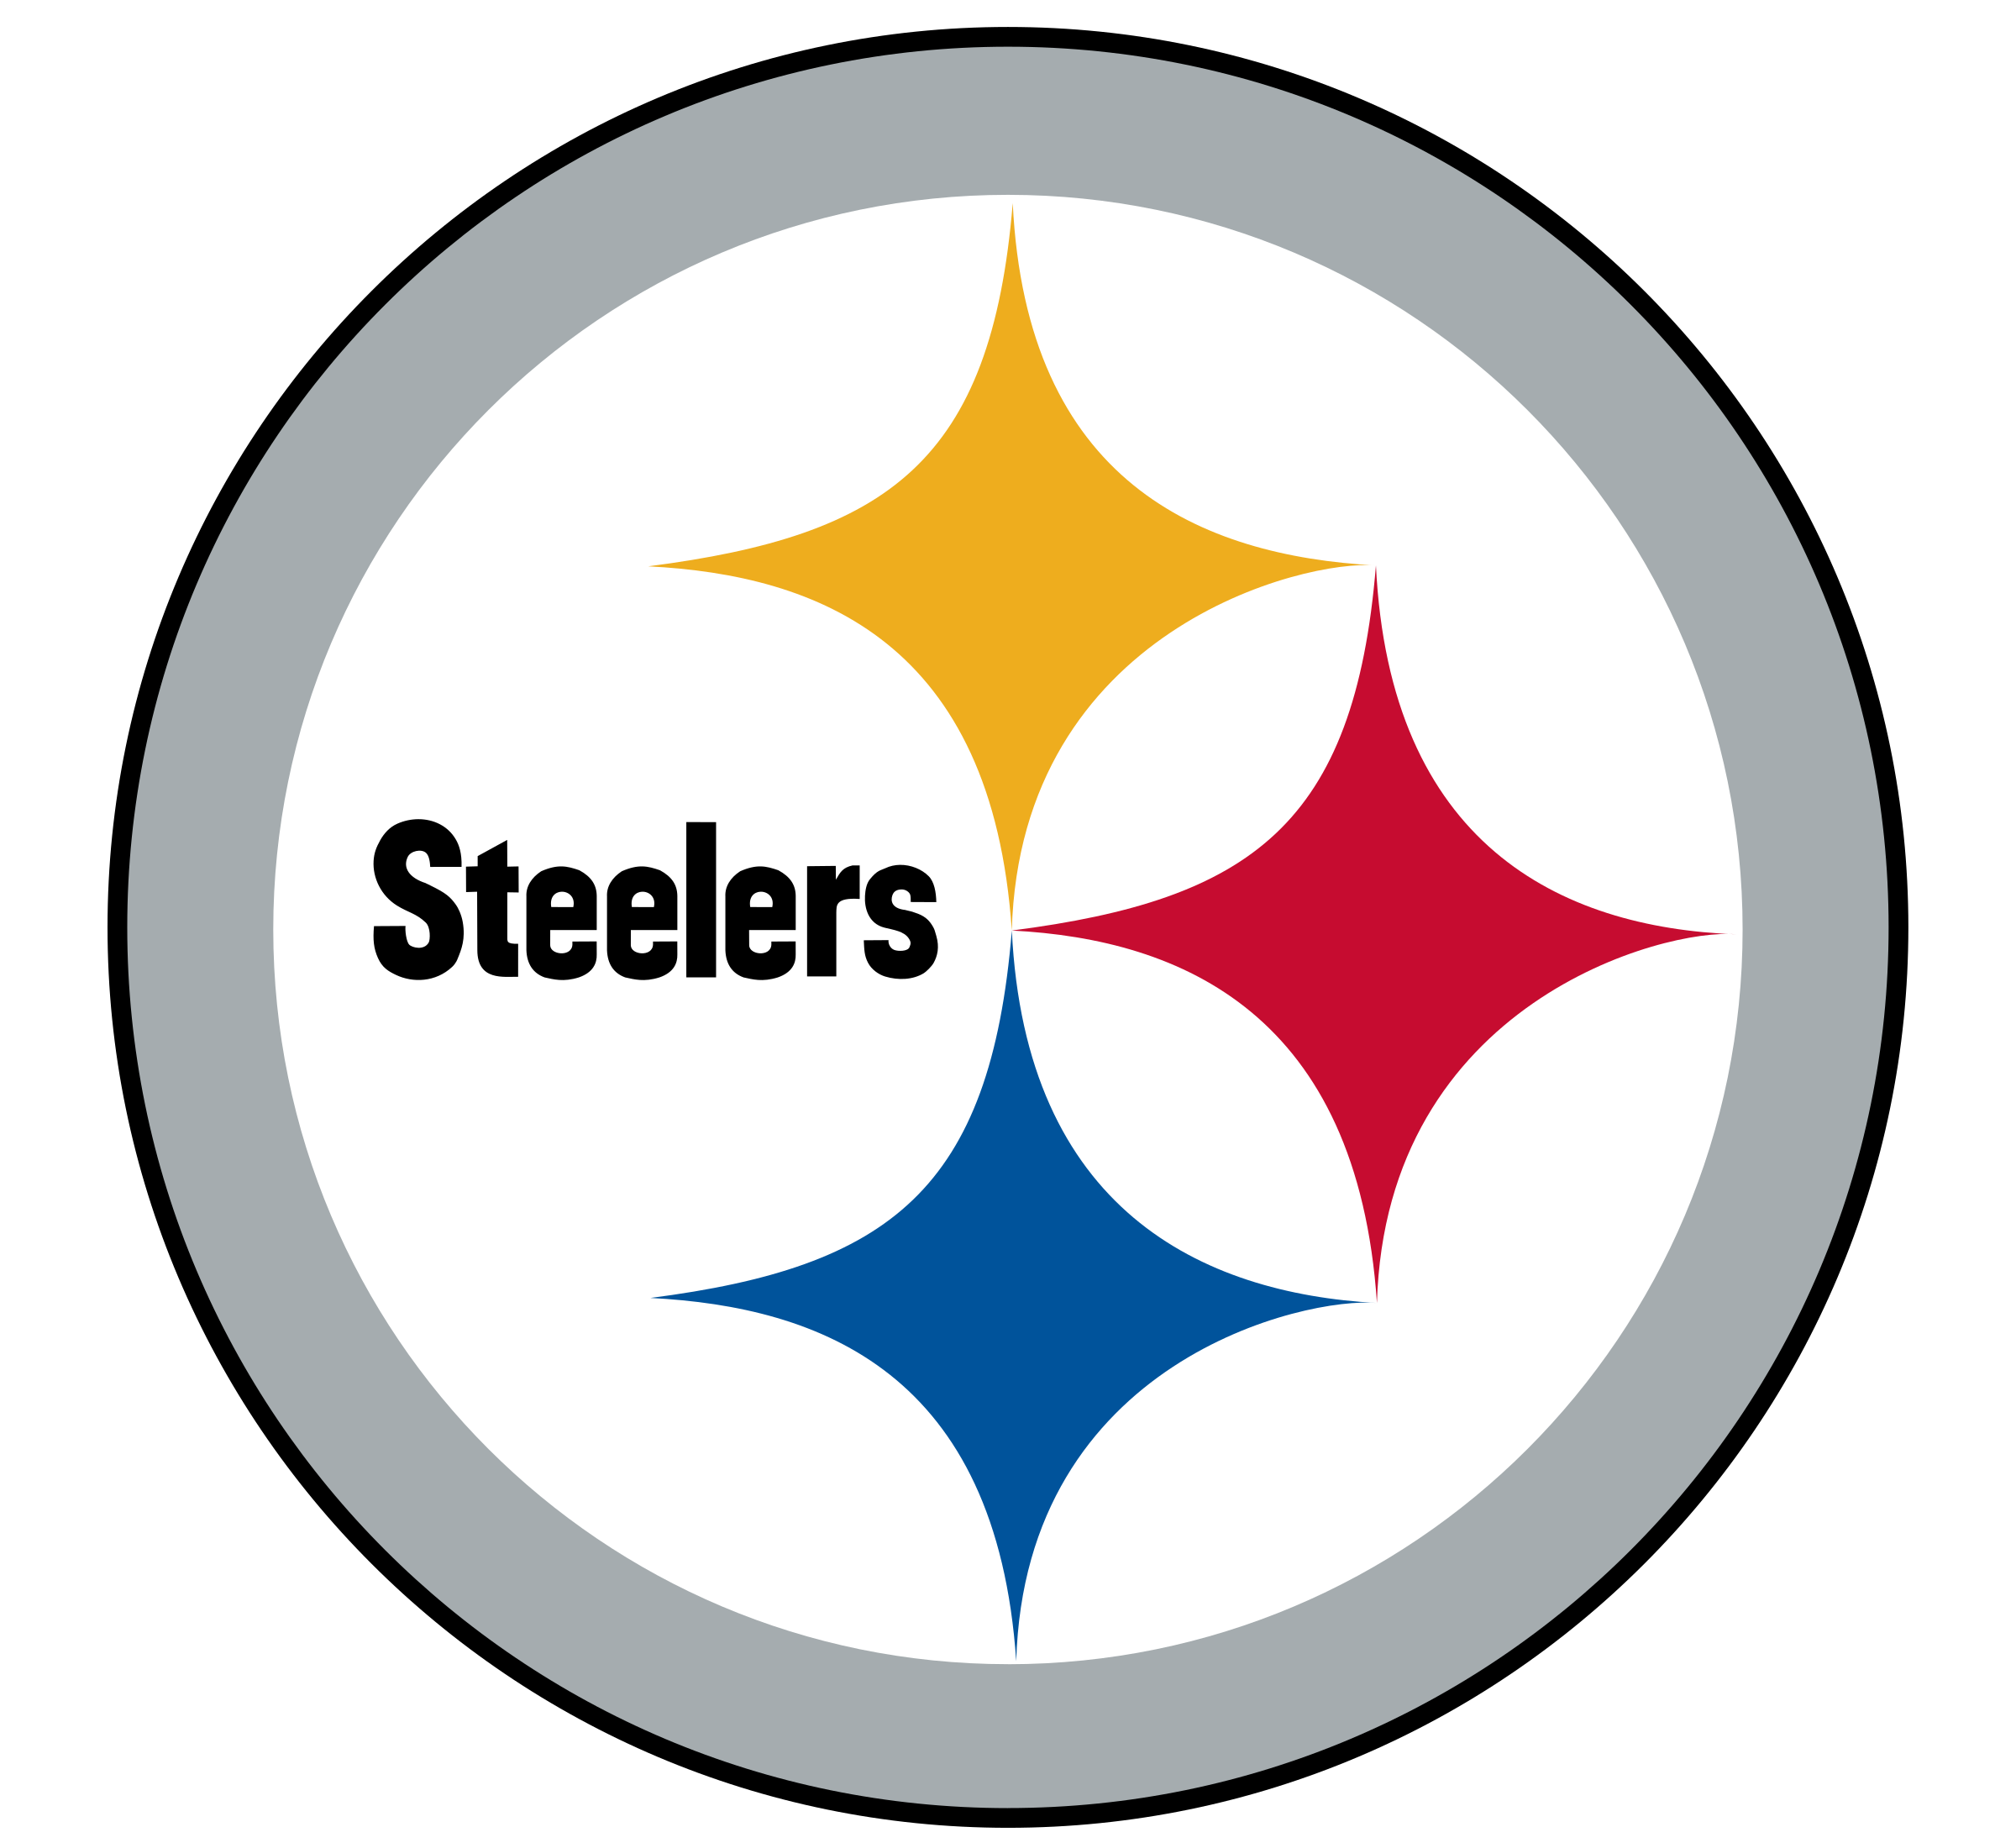 Steelers vector. Pittsburgh logo png transparent